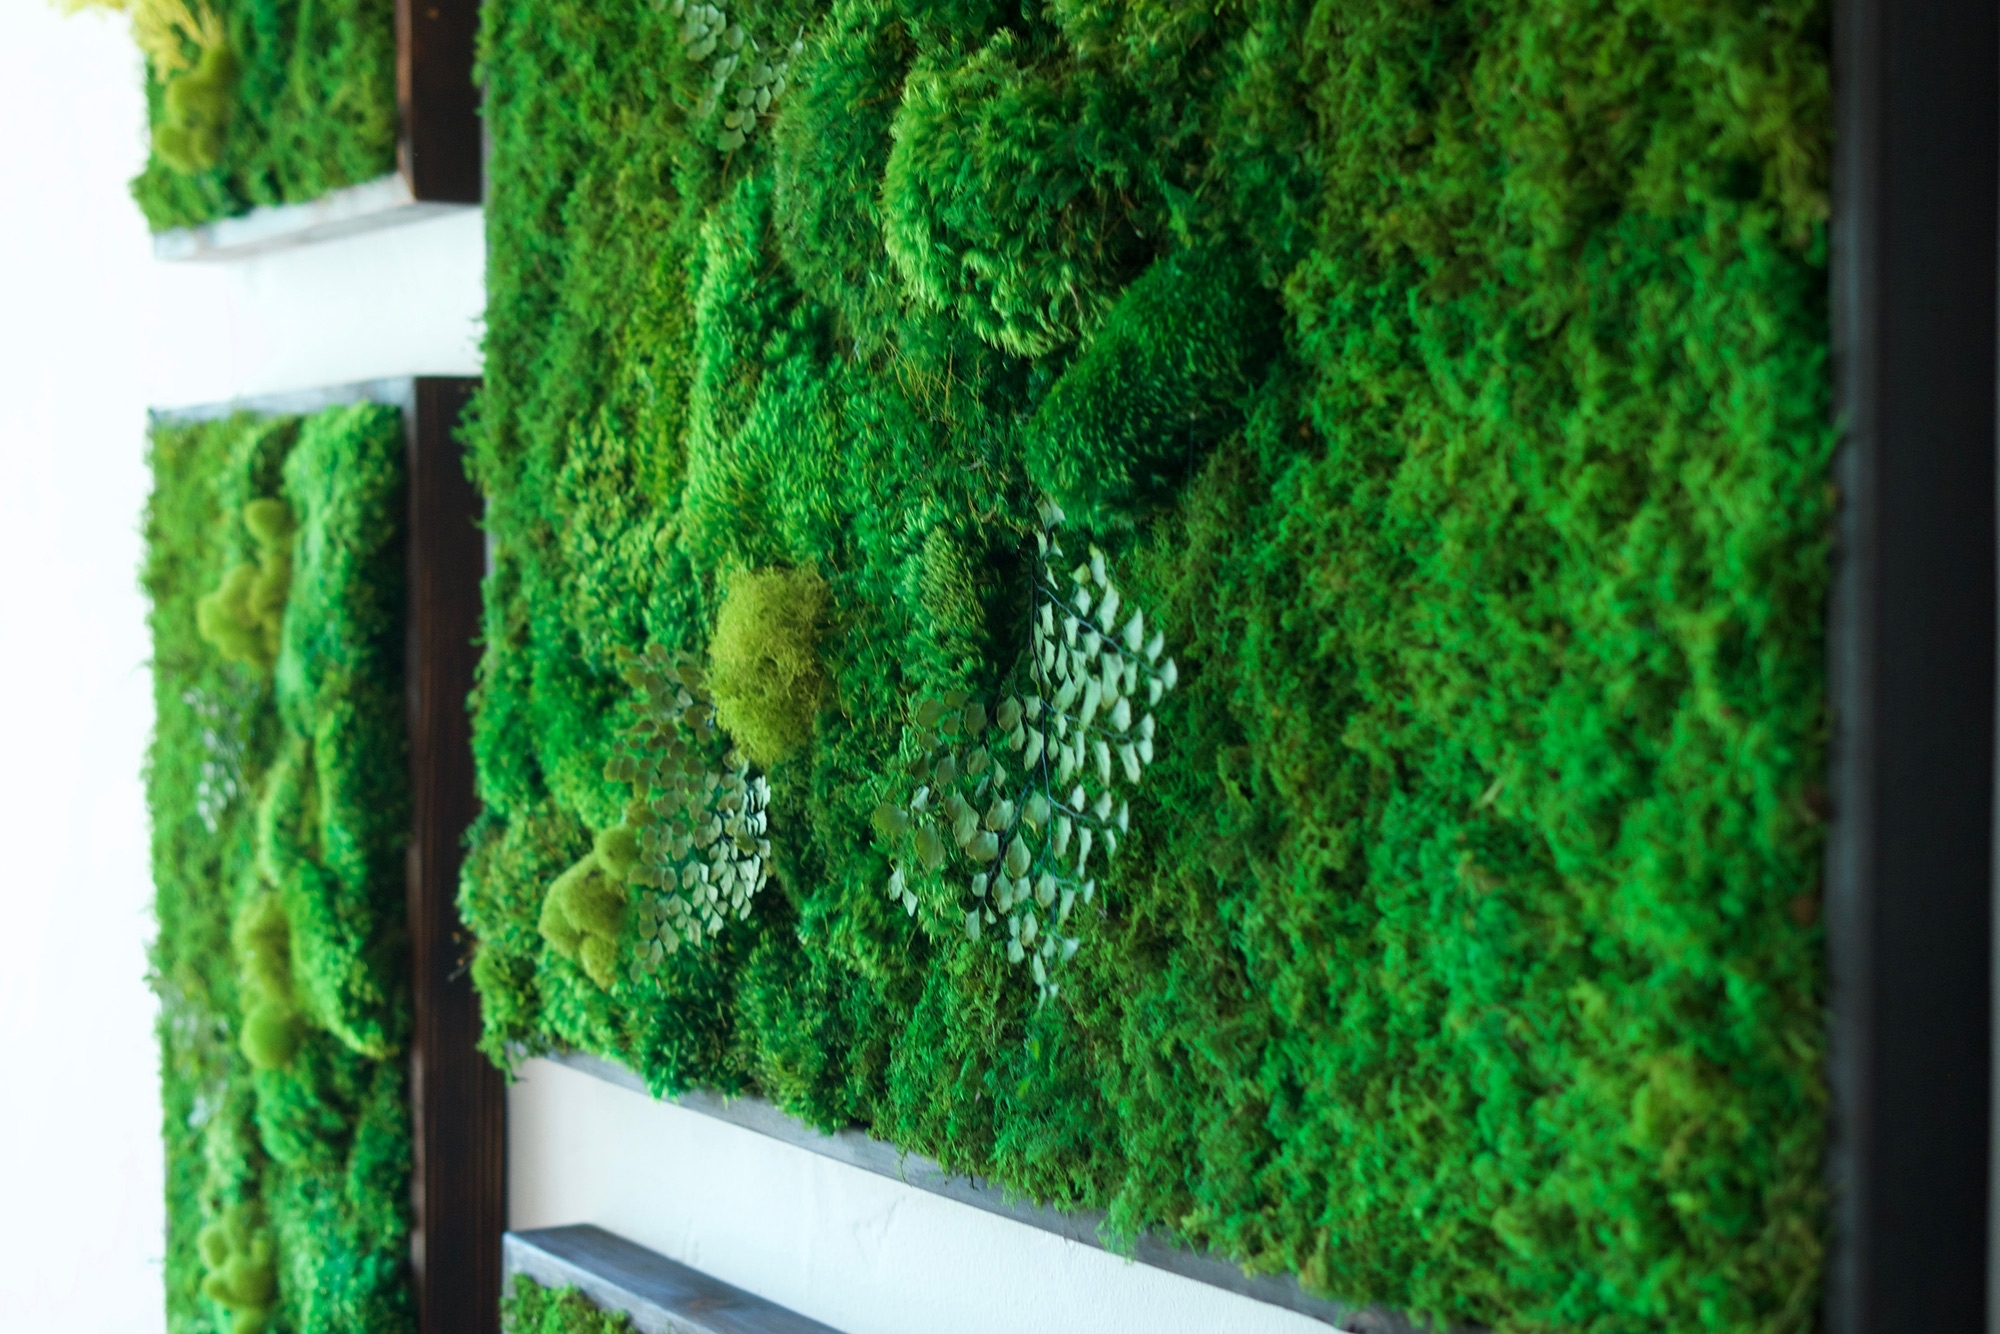 "Moss Wall Art Regarding Widely Used 58X58"" Real Preserved Moss Wall Art Green Wall Collage No Sticks. No (Gallery 5 of 20)"